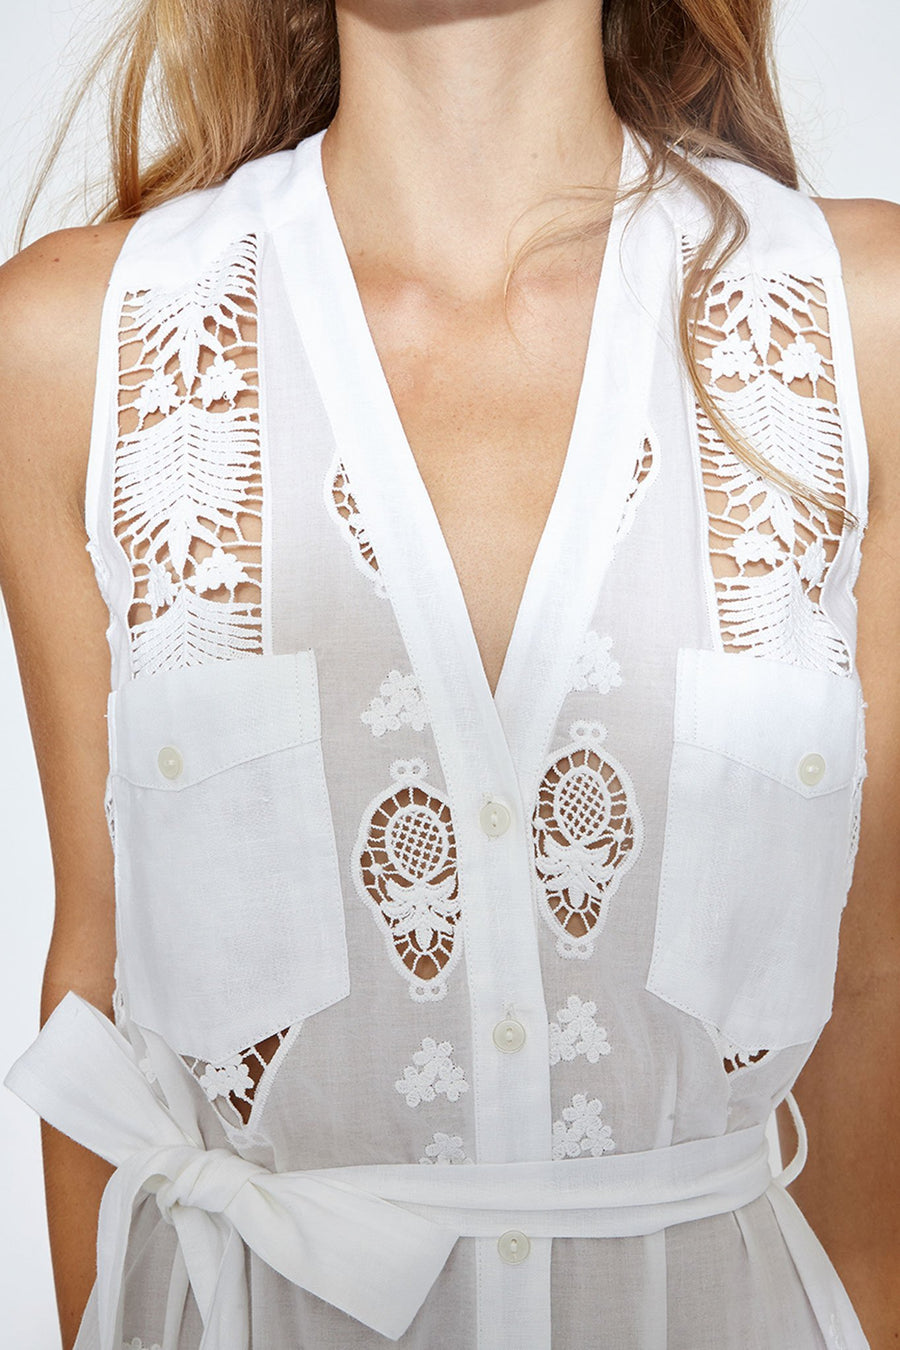 This is a detail photo of a v neckline on a white cotton embroidered dress. The photo shows details of the embroidery design with flowers and pineapples. The dress has two square solid white pockets on the chest.